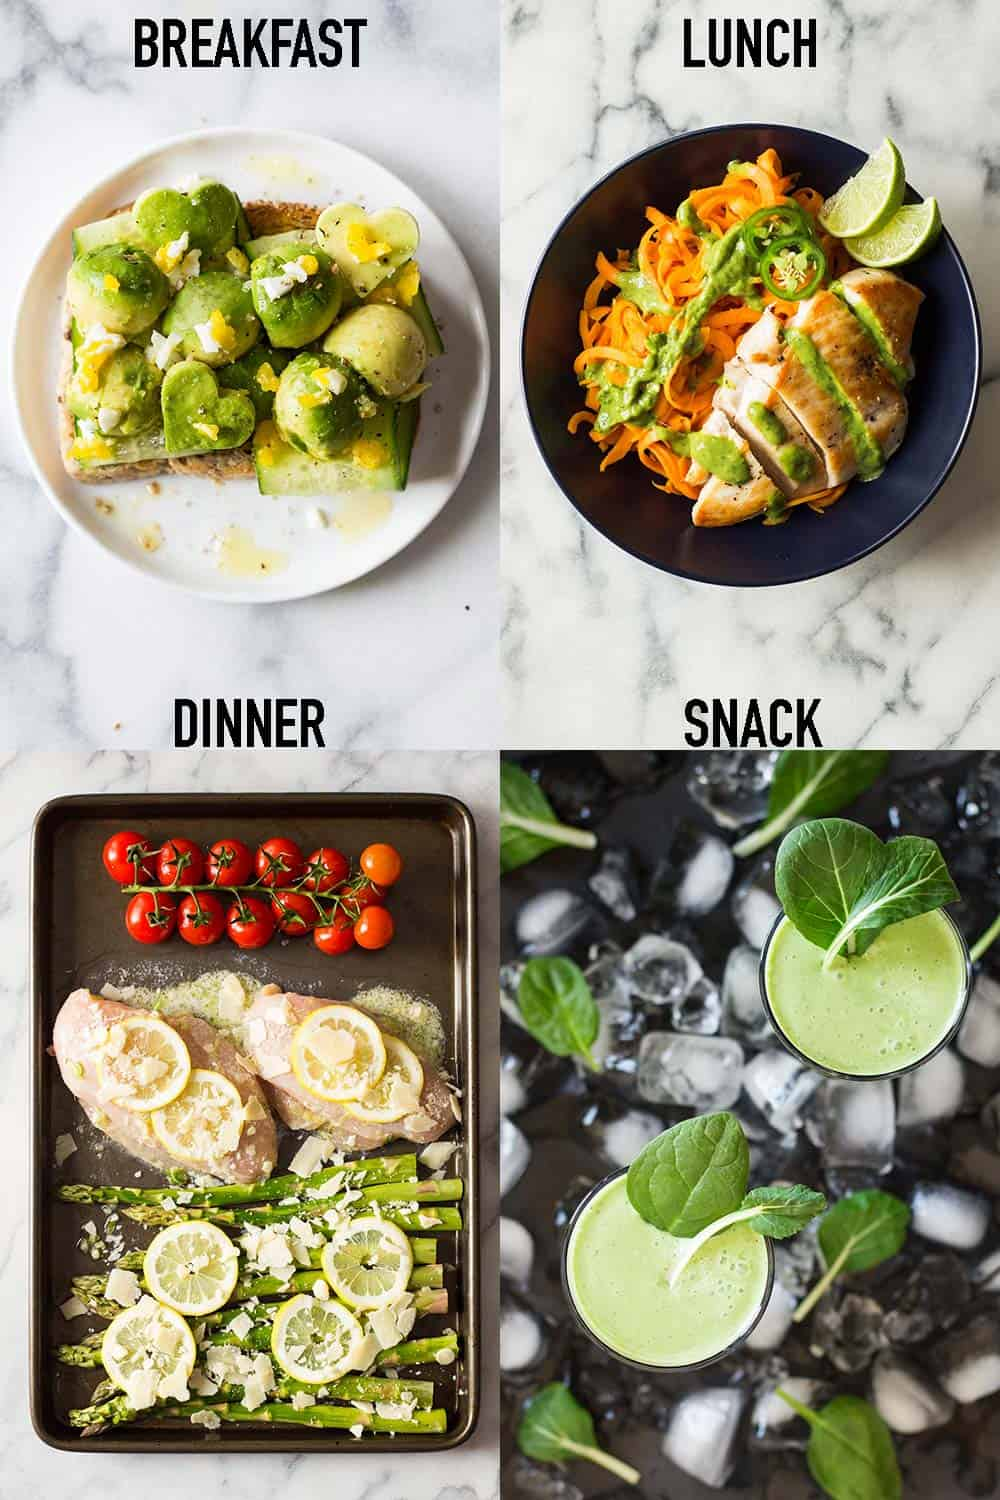 Fill Half Your Plate With Fruits & Veggies